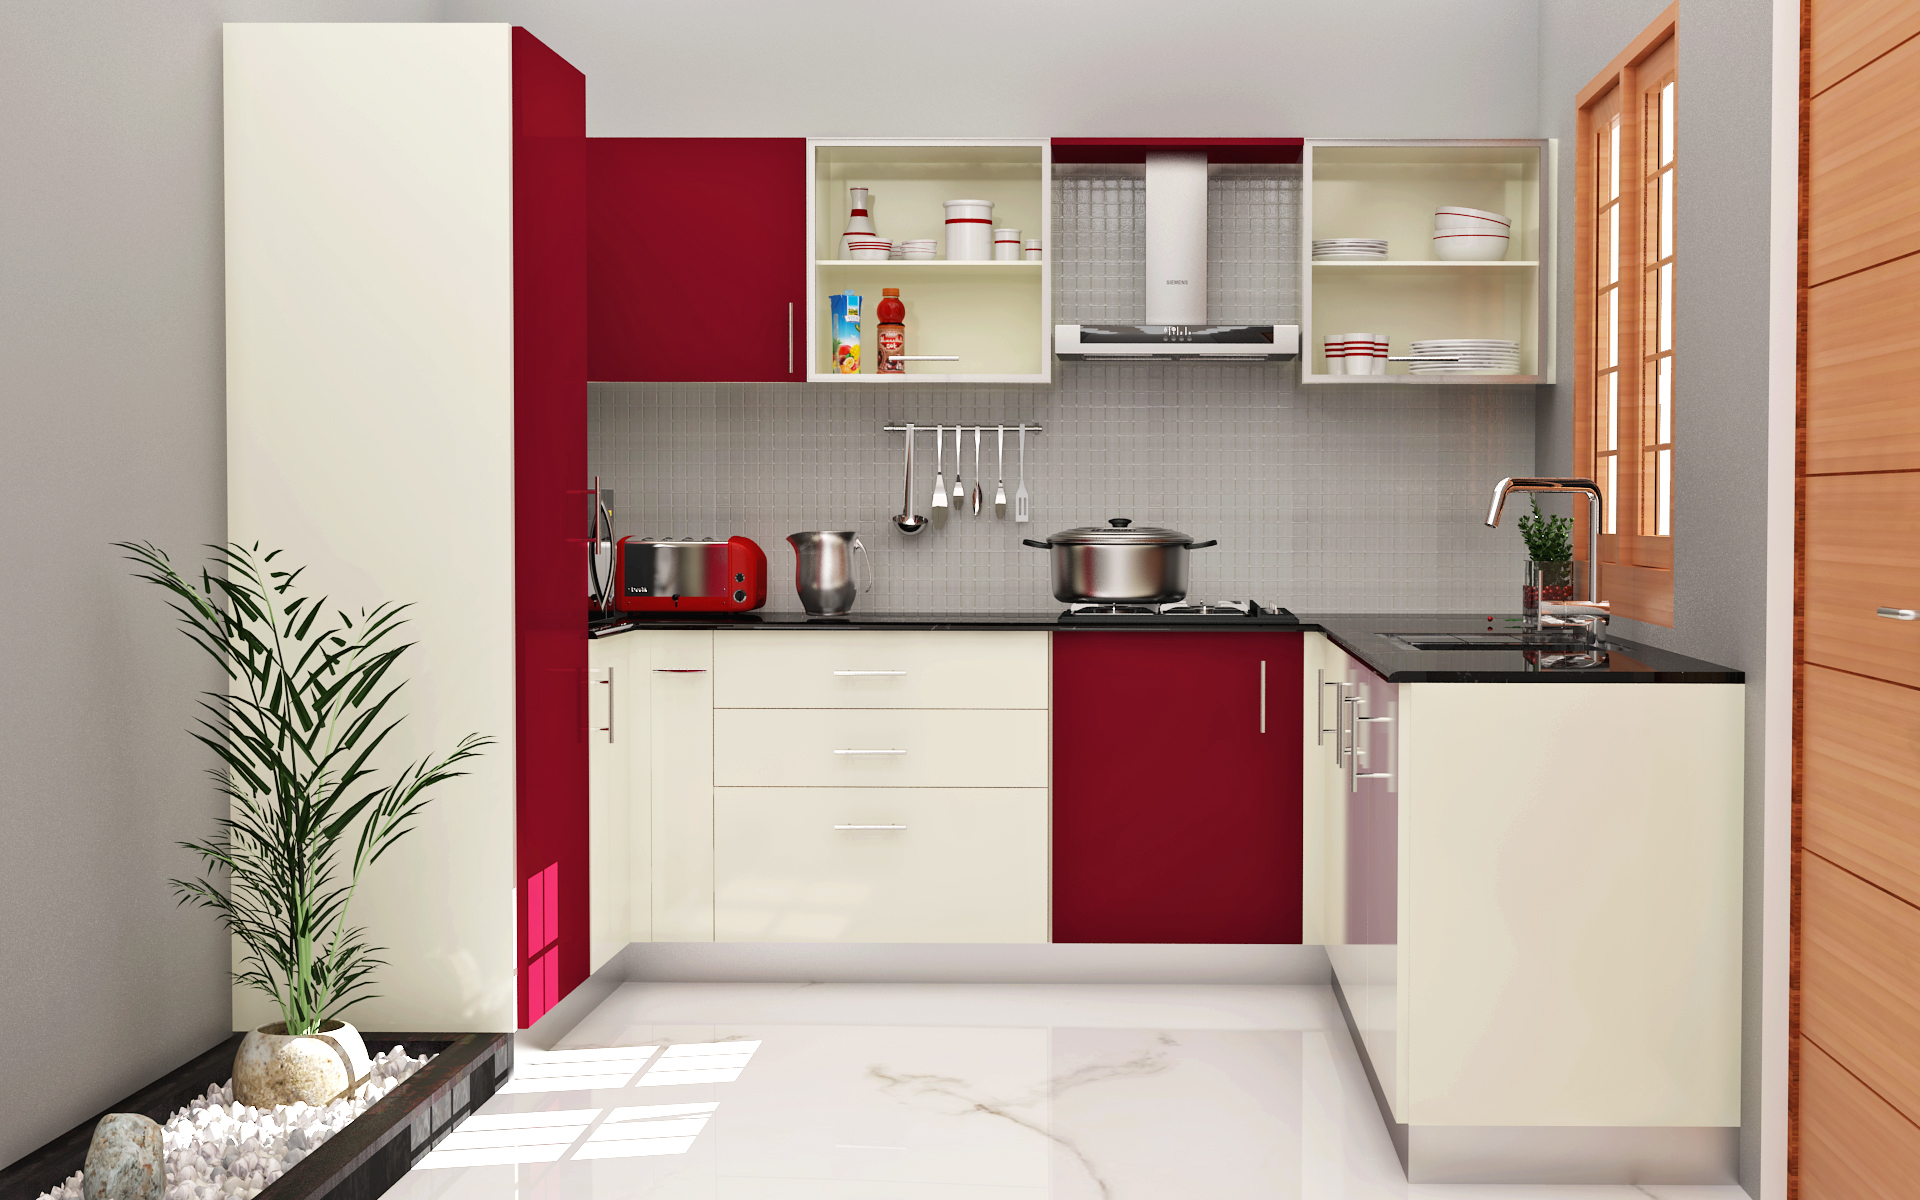 Fiesta rose+frosty white final Modular Kitchen